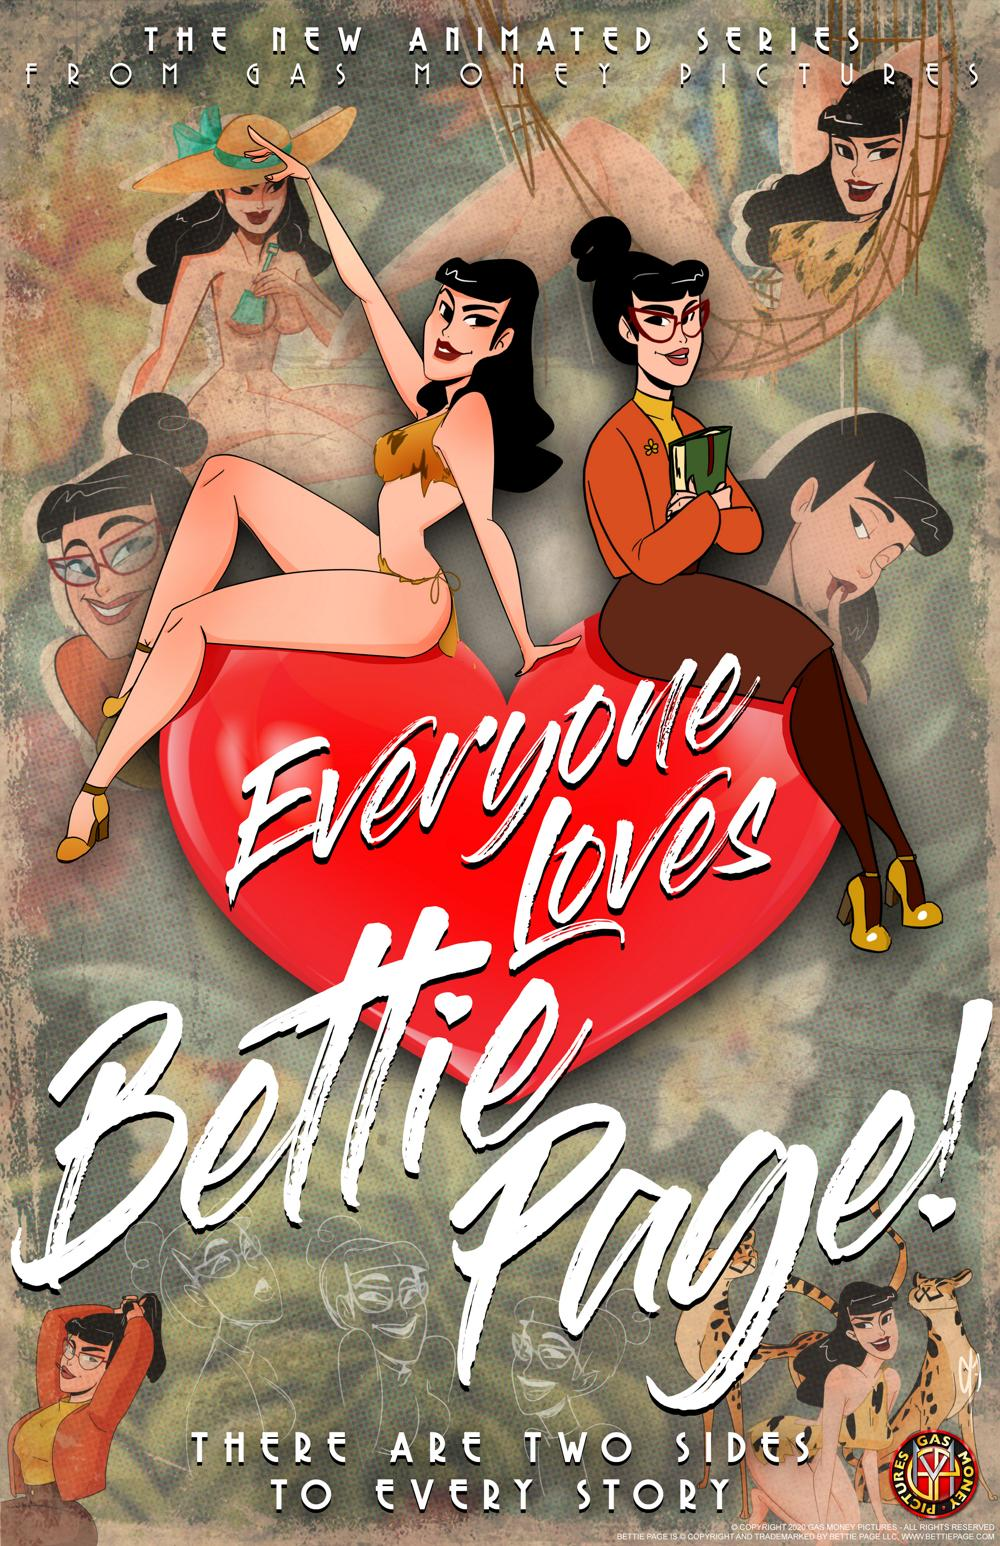 Everyone Loves Bettie Page!